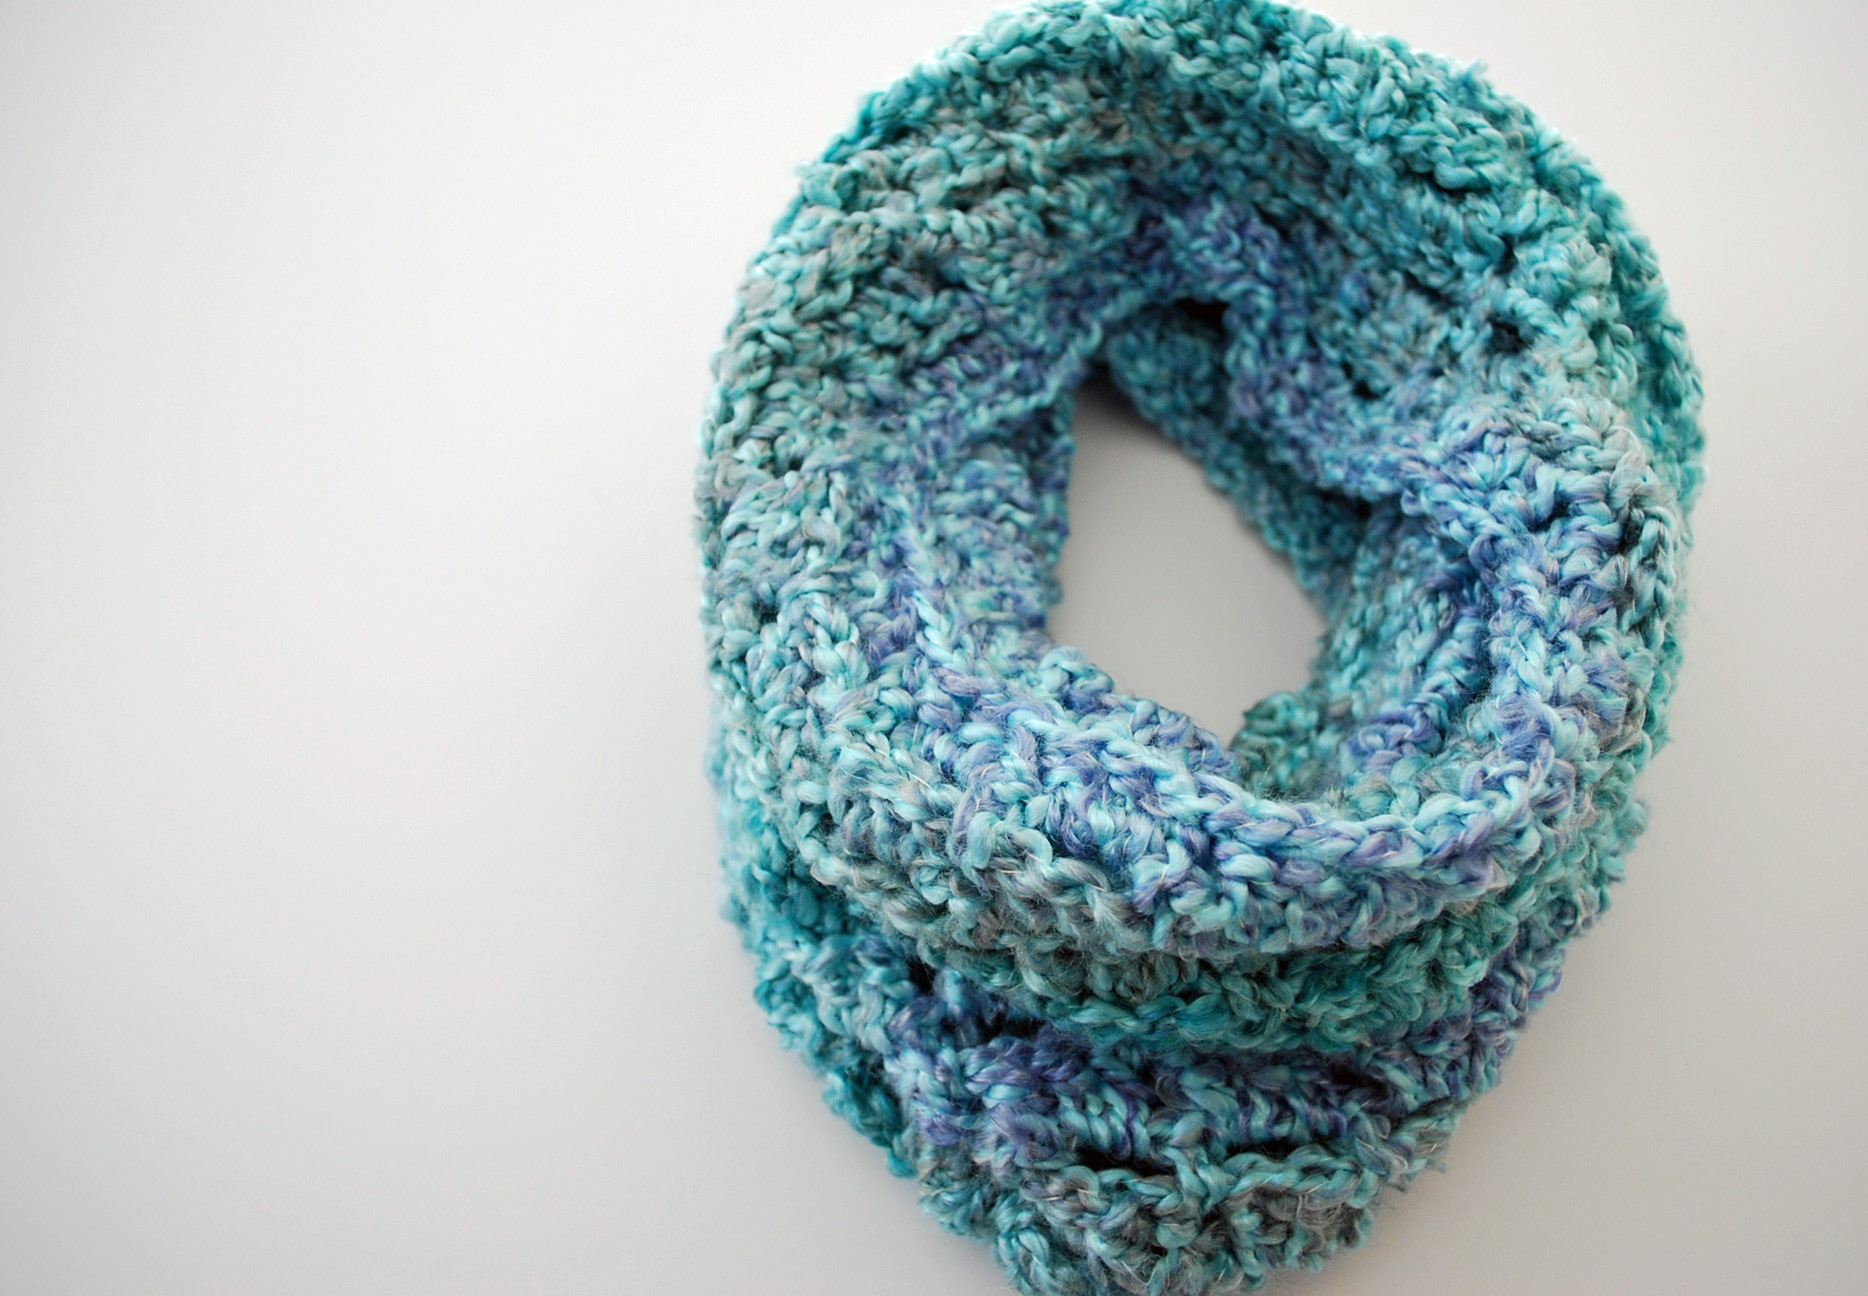 Best Of Cozy Cowl B Hooked Crochet Free Crochet Cowl Patterns Of Marvelous 40 Images Free Crochet Cowl Patterns